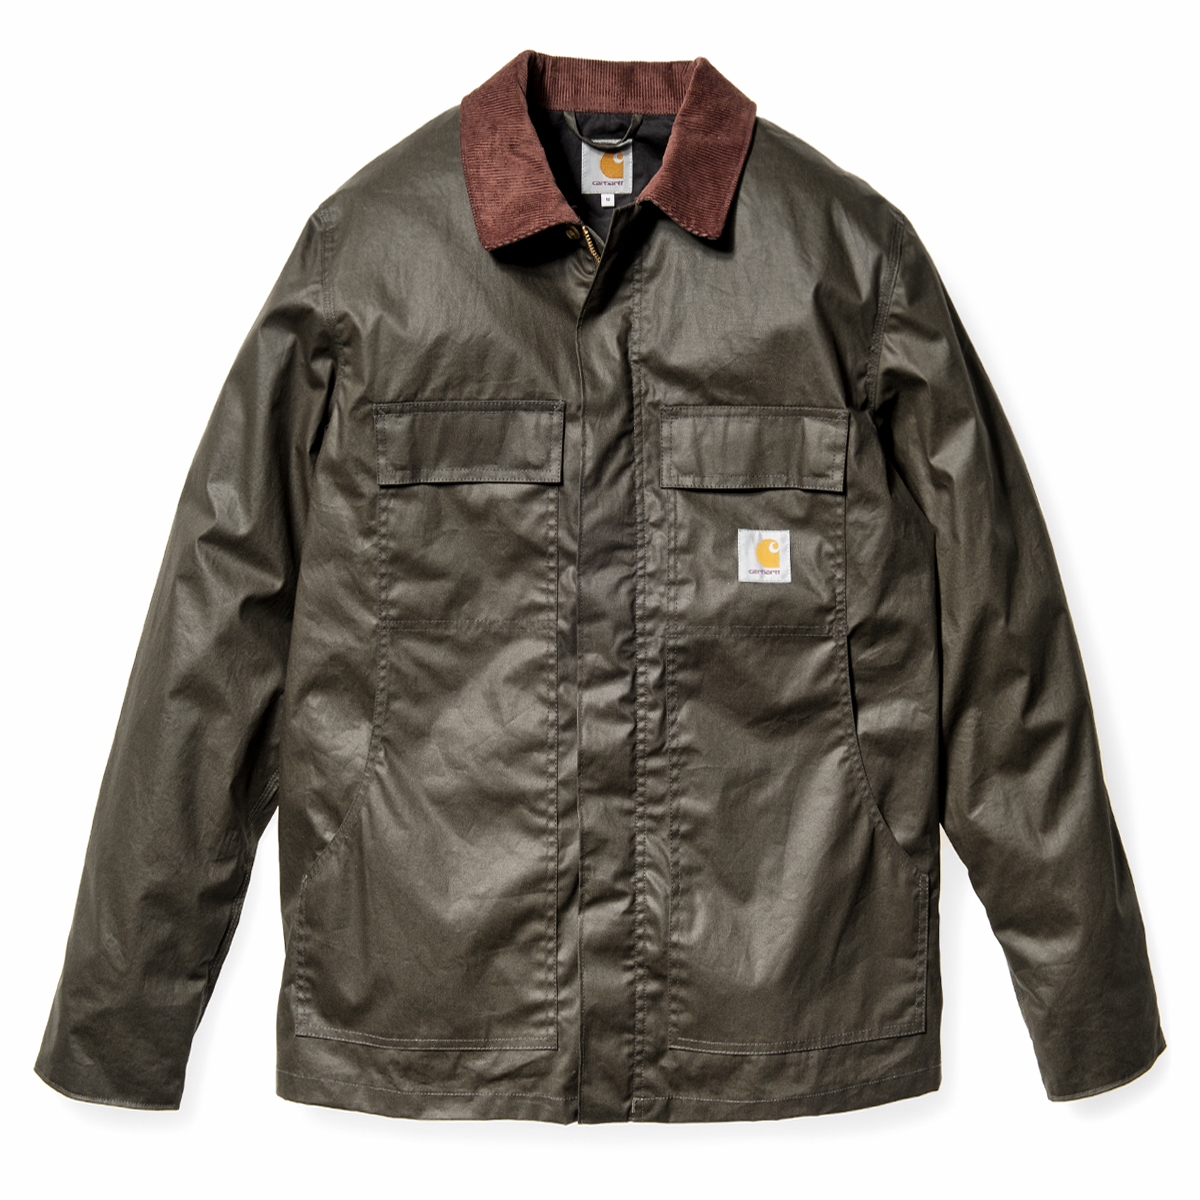 Jackets for a Factory-Waxed Look Kentex Online Men's British Quilted Padded Rain Jacket Oily Waxed Coat Fishing Farming. by Kentex Online. $ $ 69 out of 5 stars 2. Product Features Detachable waxed and lined hood with drawstrings. Foxfire Outback Trail, Oilskin, Oilcloth, Waterproof Barn Coat Black Small.